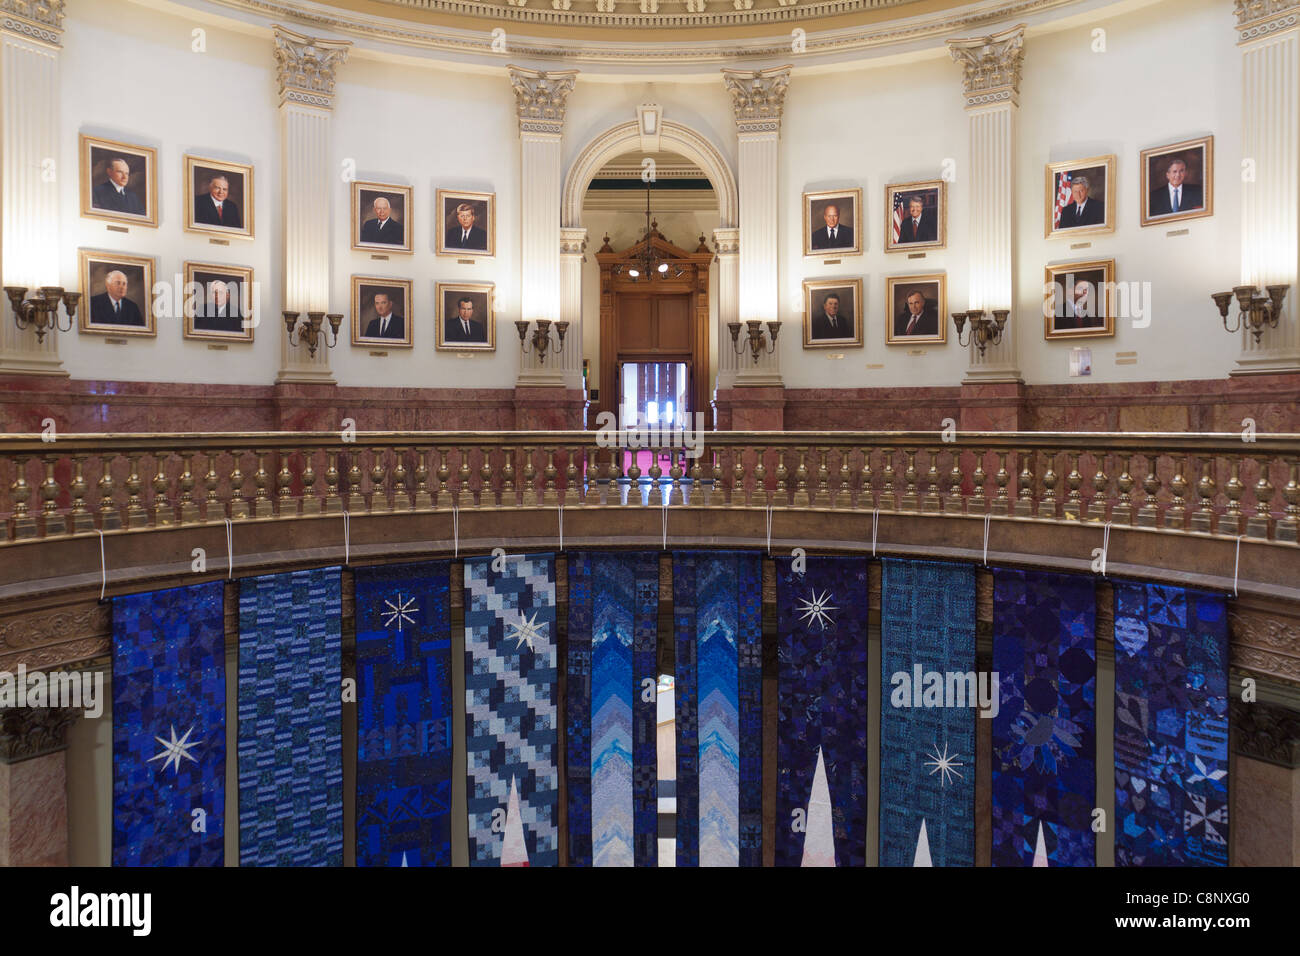 Gallery of Presidents displayed and banners hanging inside the rotunda of the Colorado state capitol building in - Stock Image